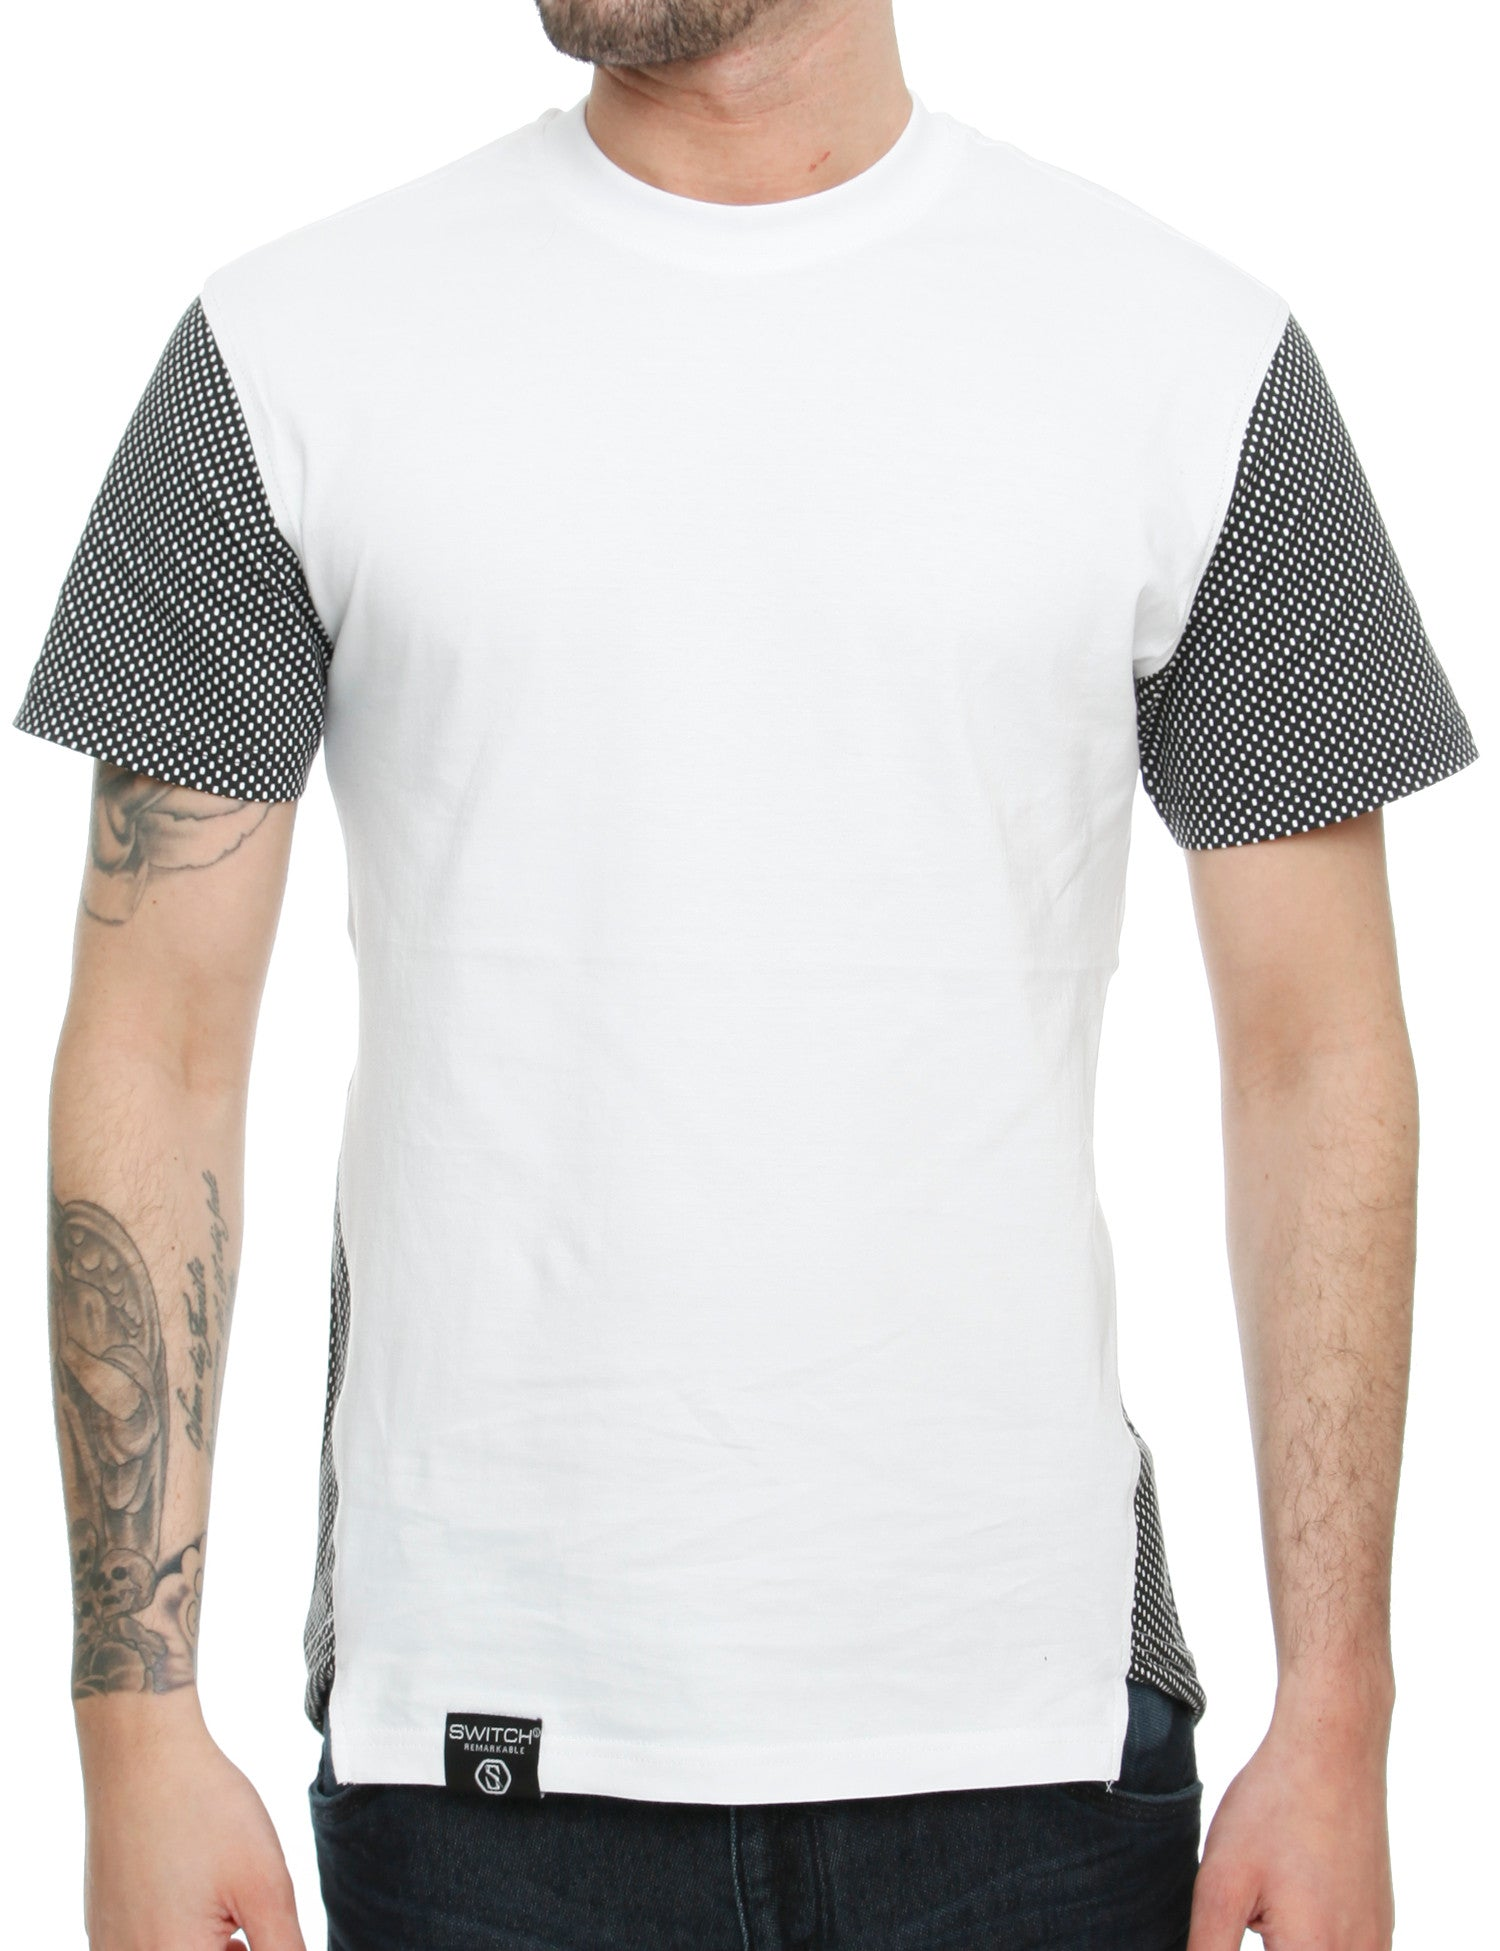 Switch Mesh T-Shirt SS6051 White